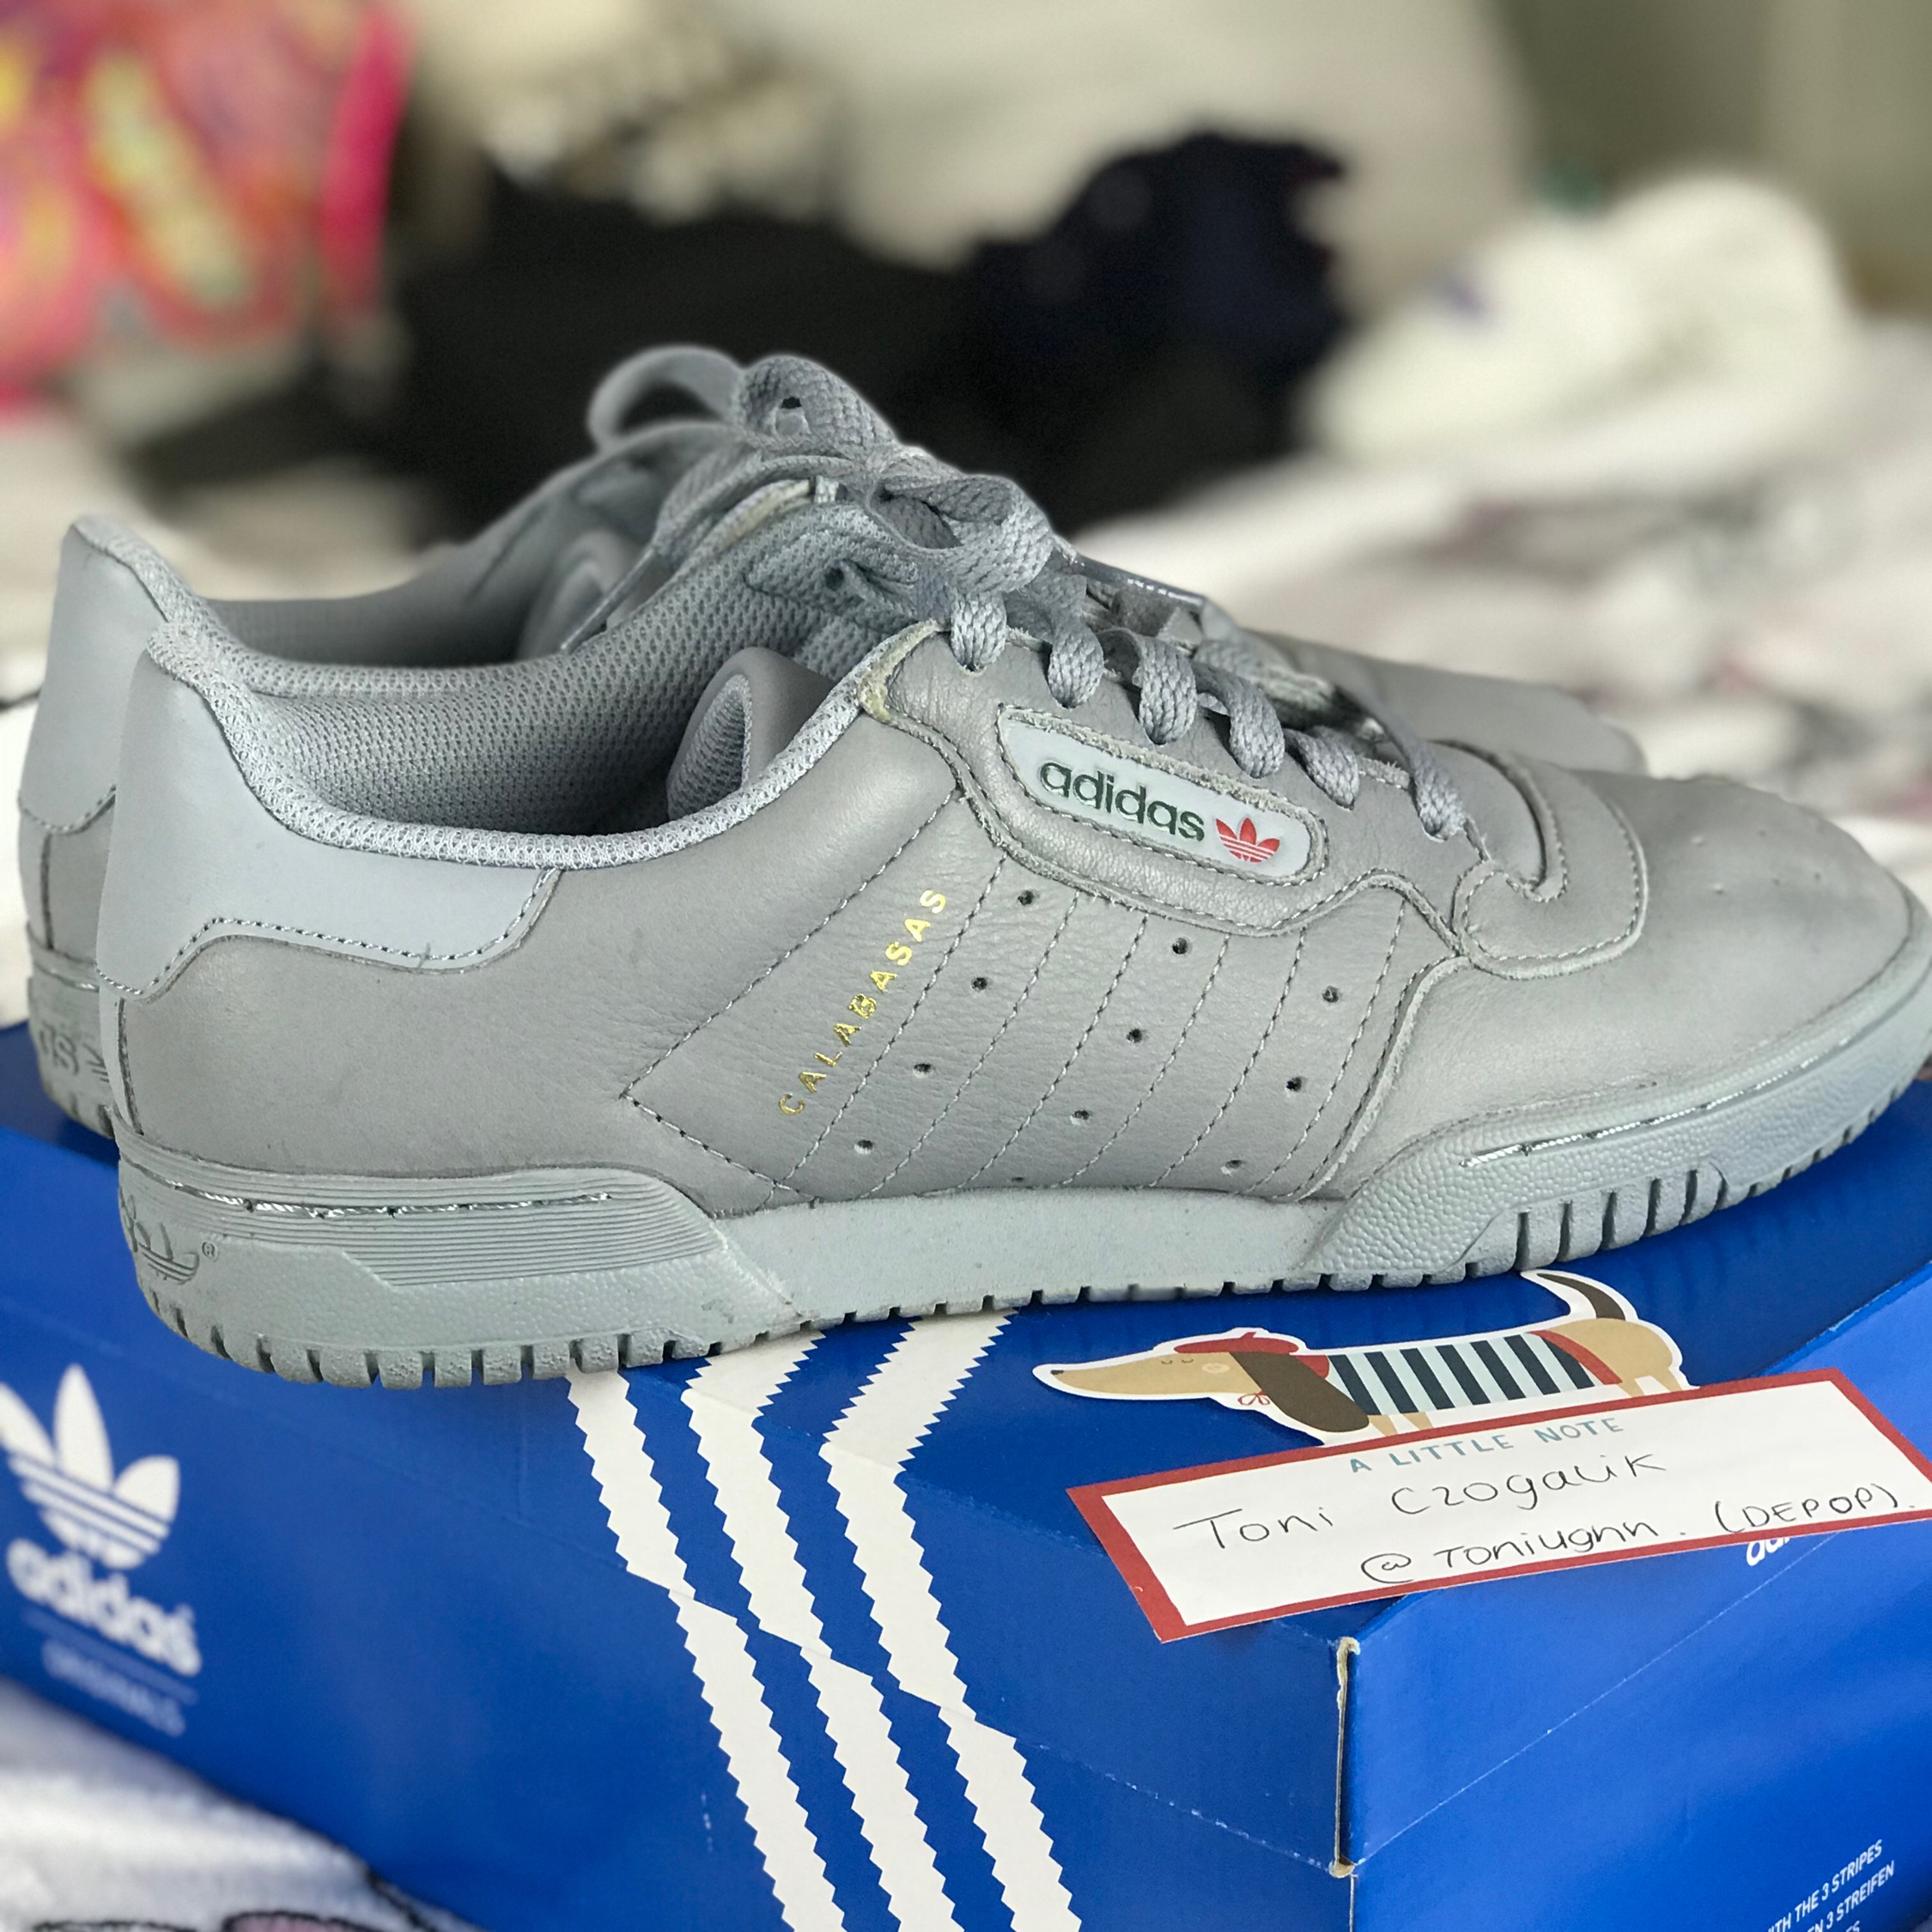 fc28e0398af Adidas Yeezy Powerphase Calabasas Size 5